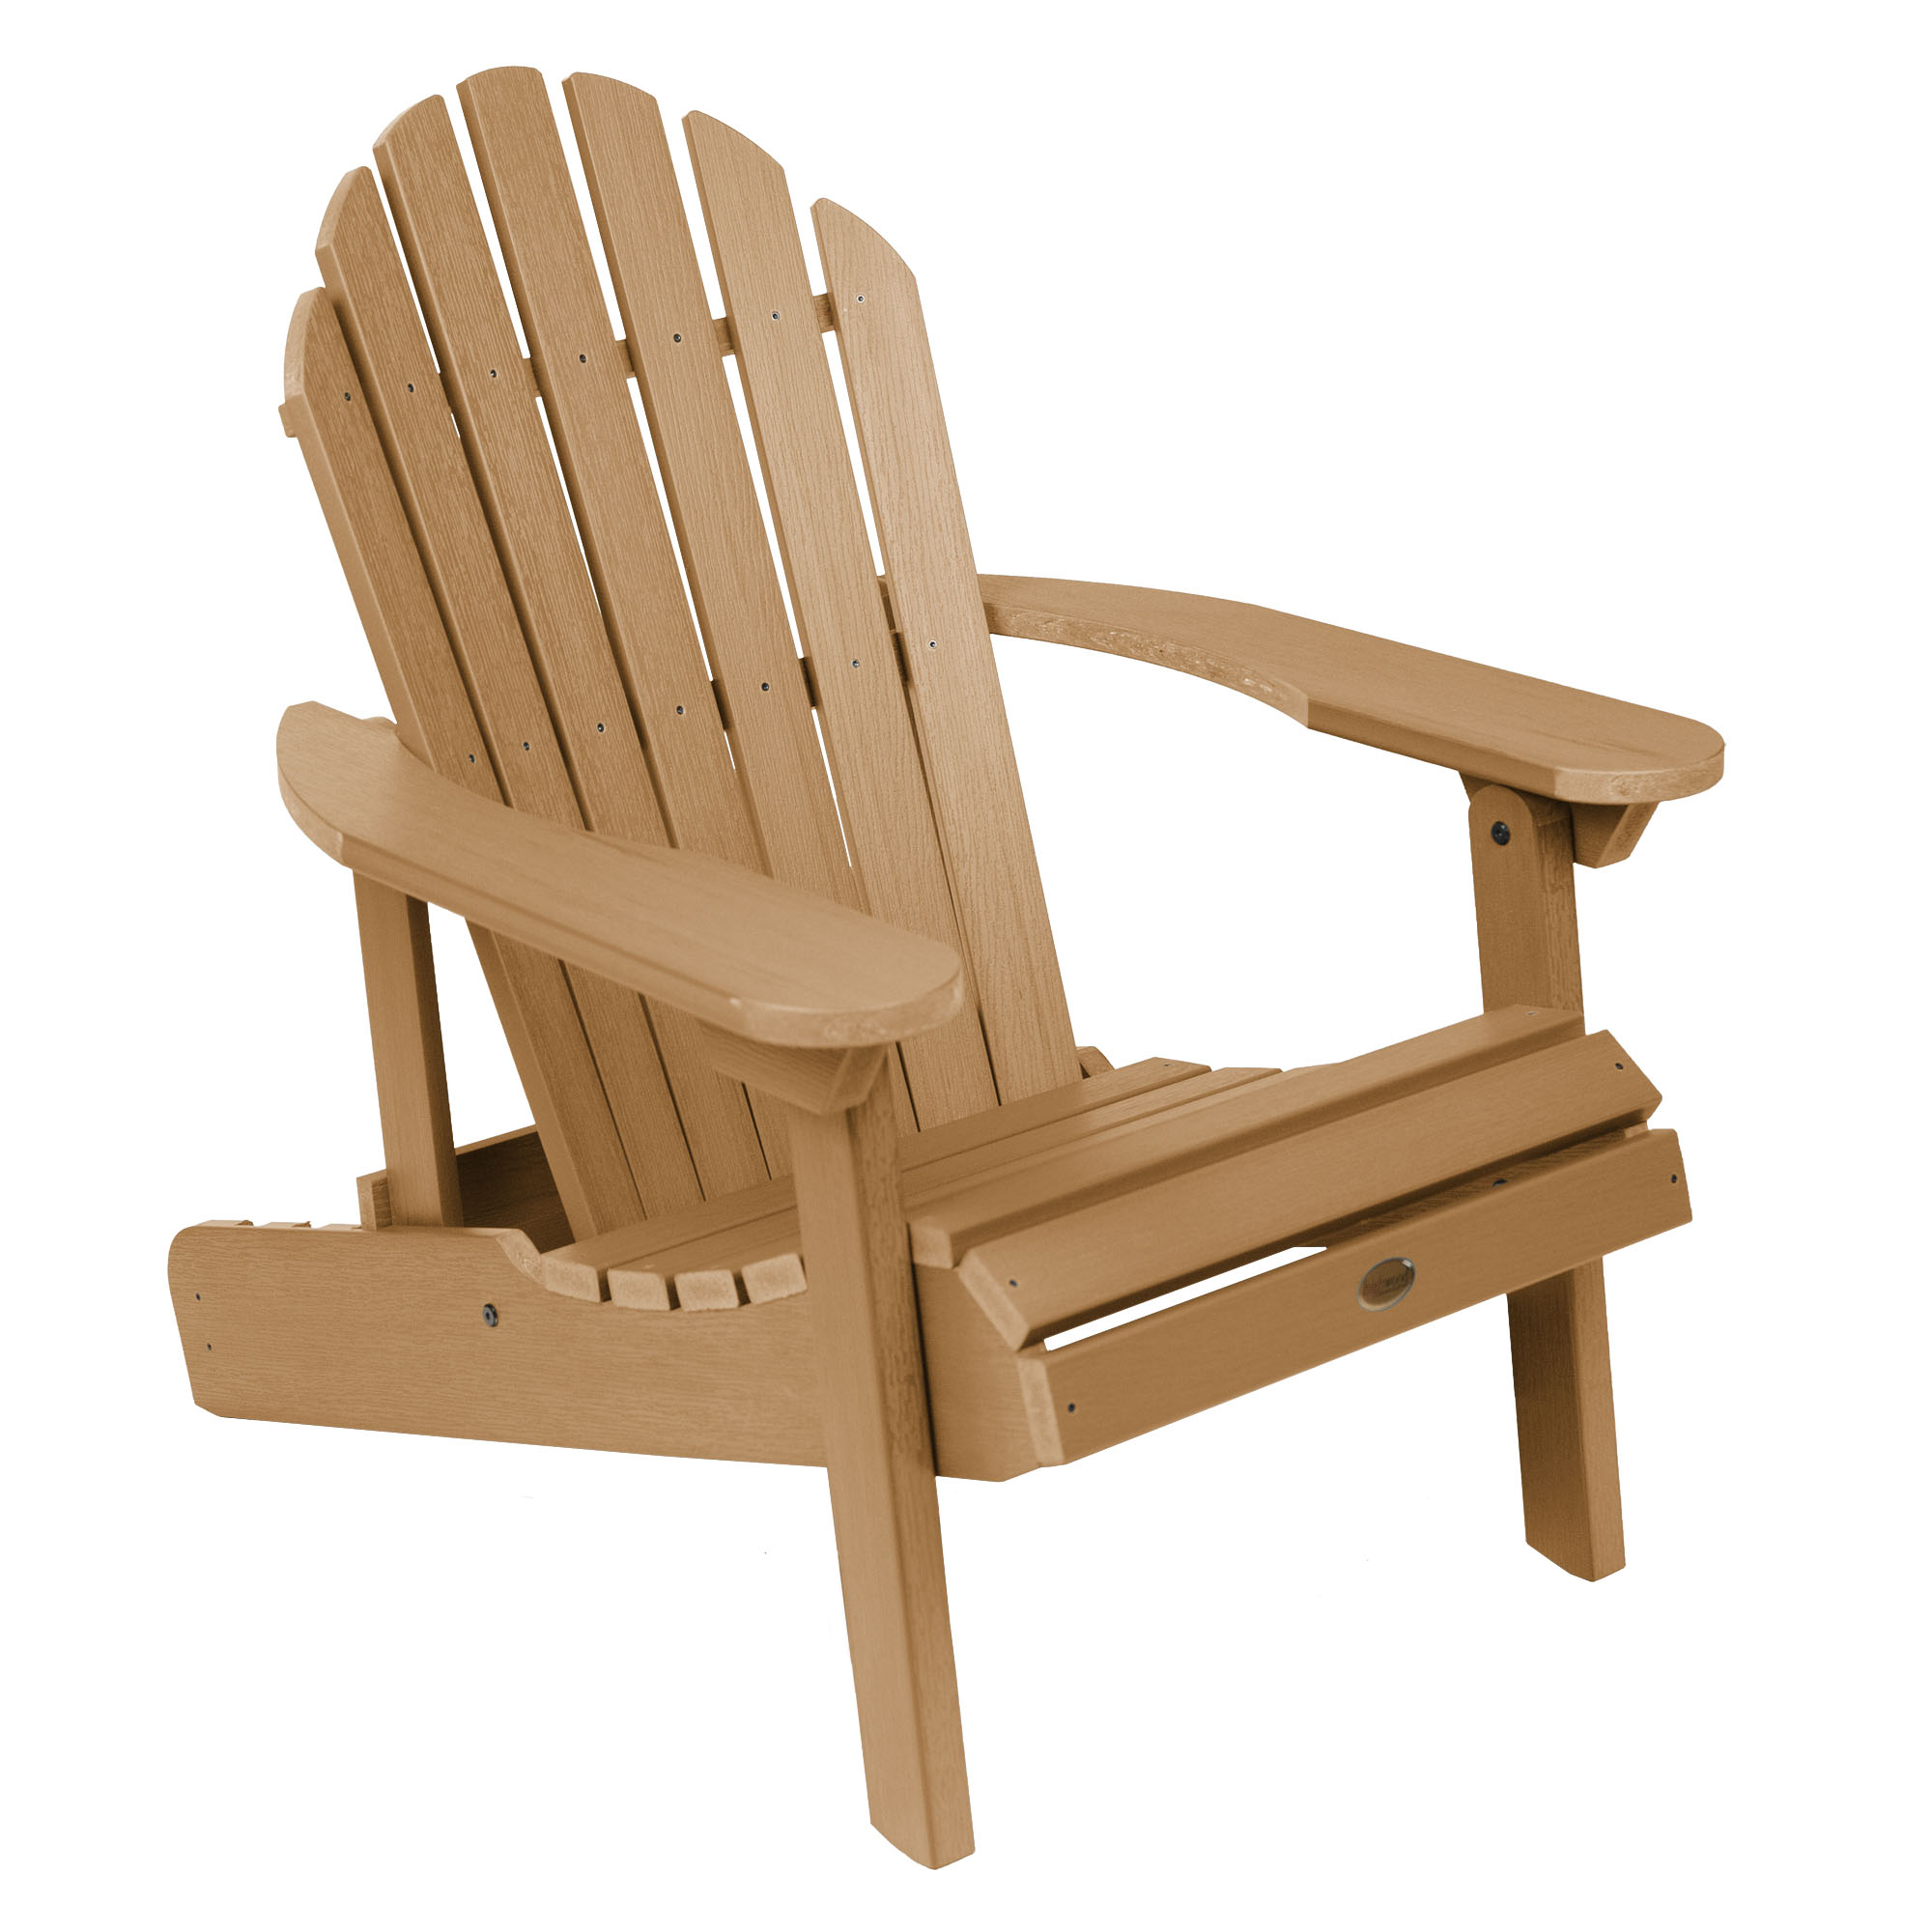 highwood adirondack chair jack daniels whiskey barrel table and chairs hamilton folding reclining